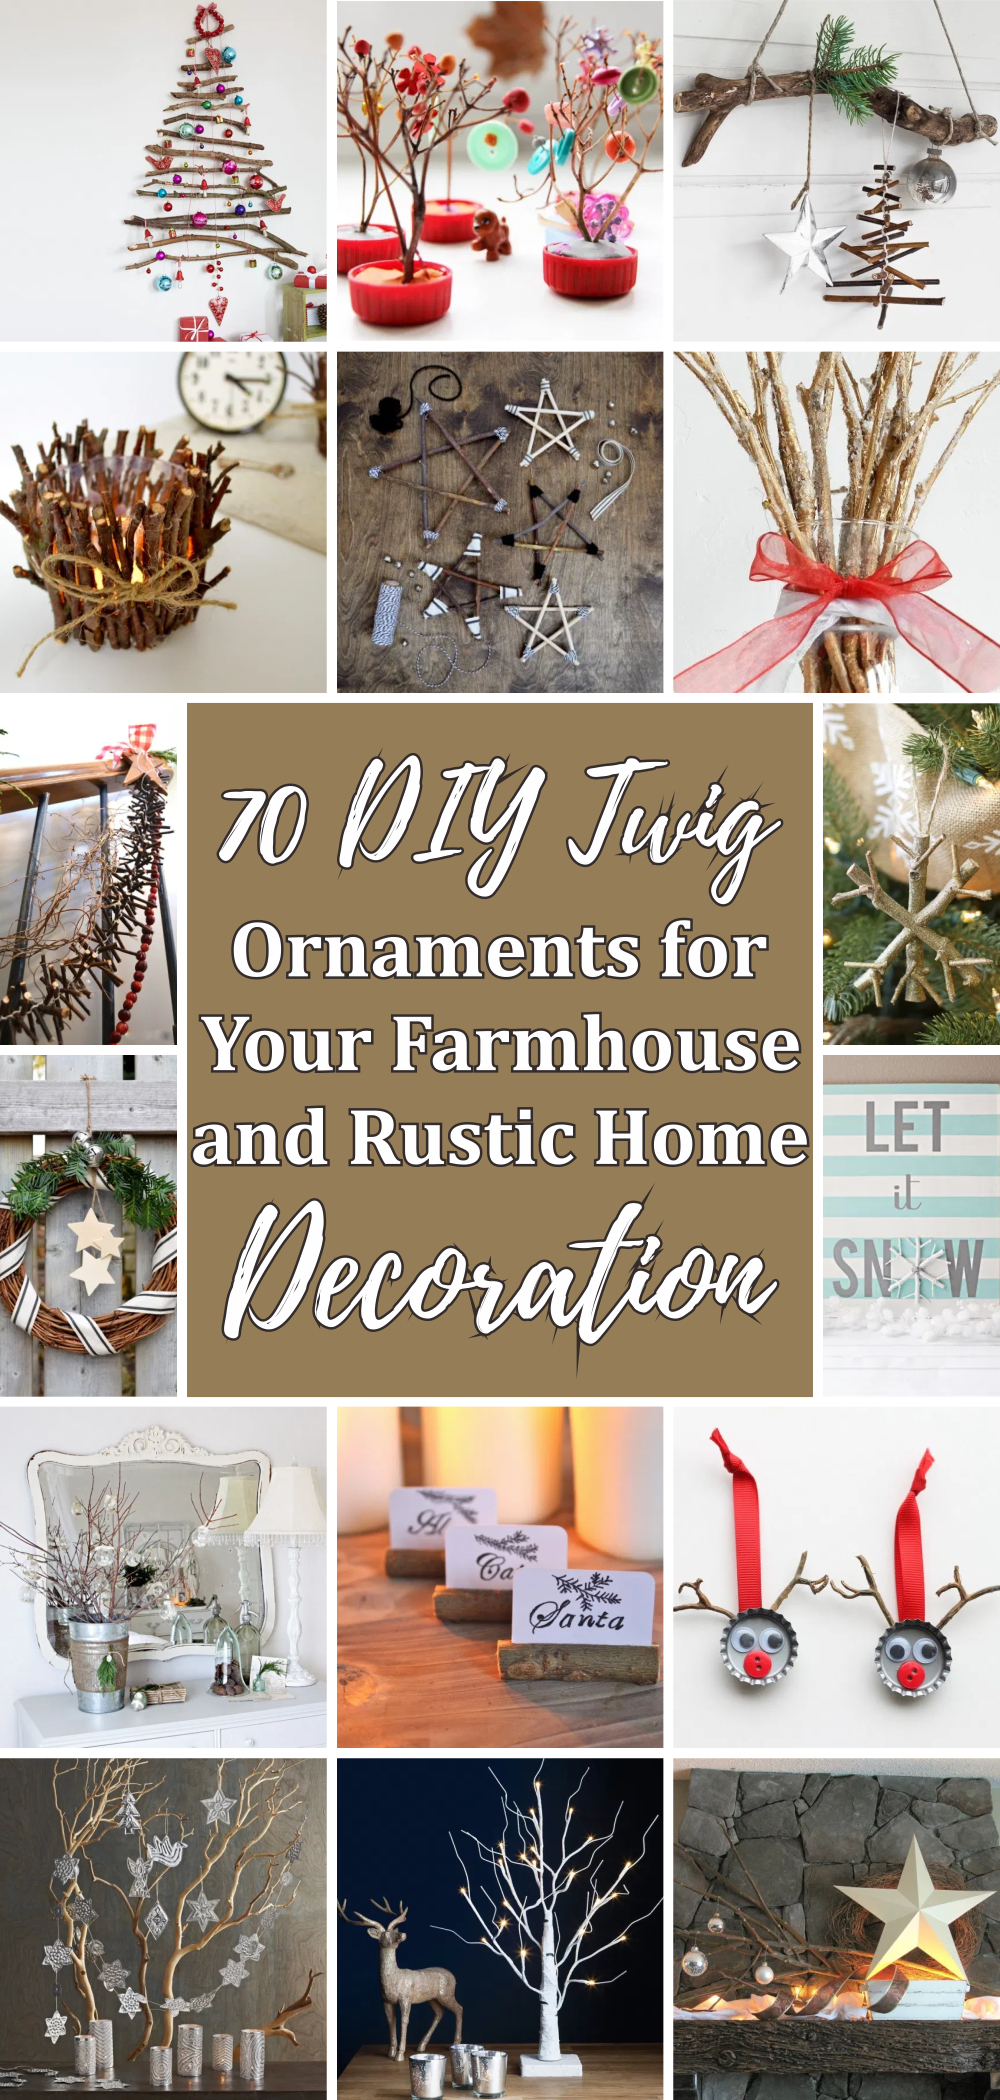 70 diy twig ornaments for your farmhouse and rustic home decoration 1